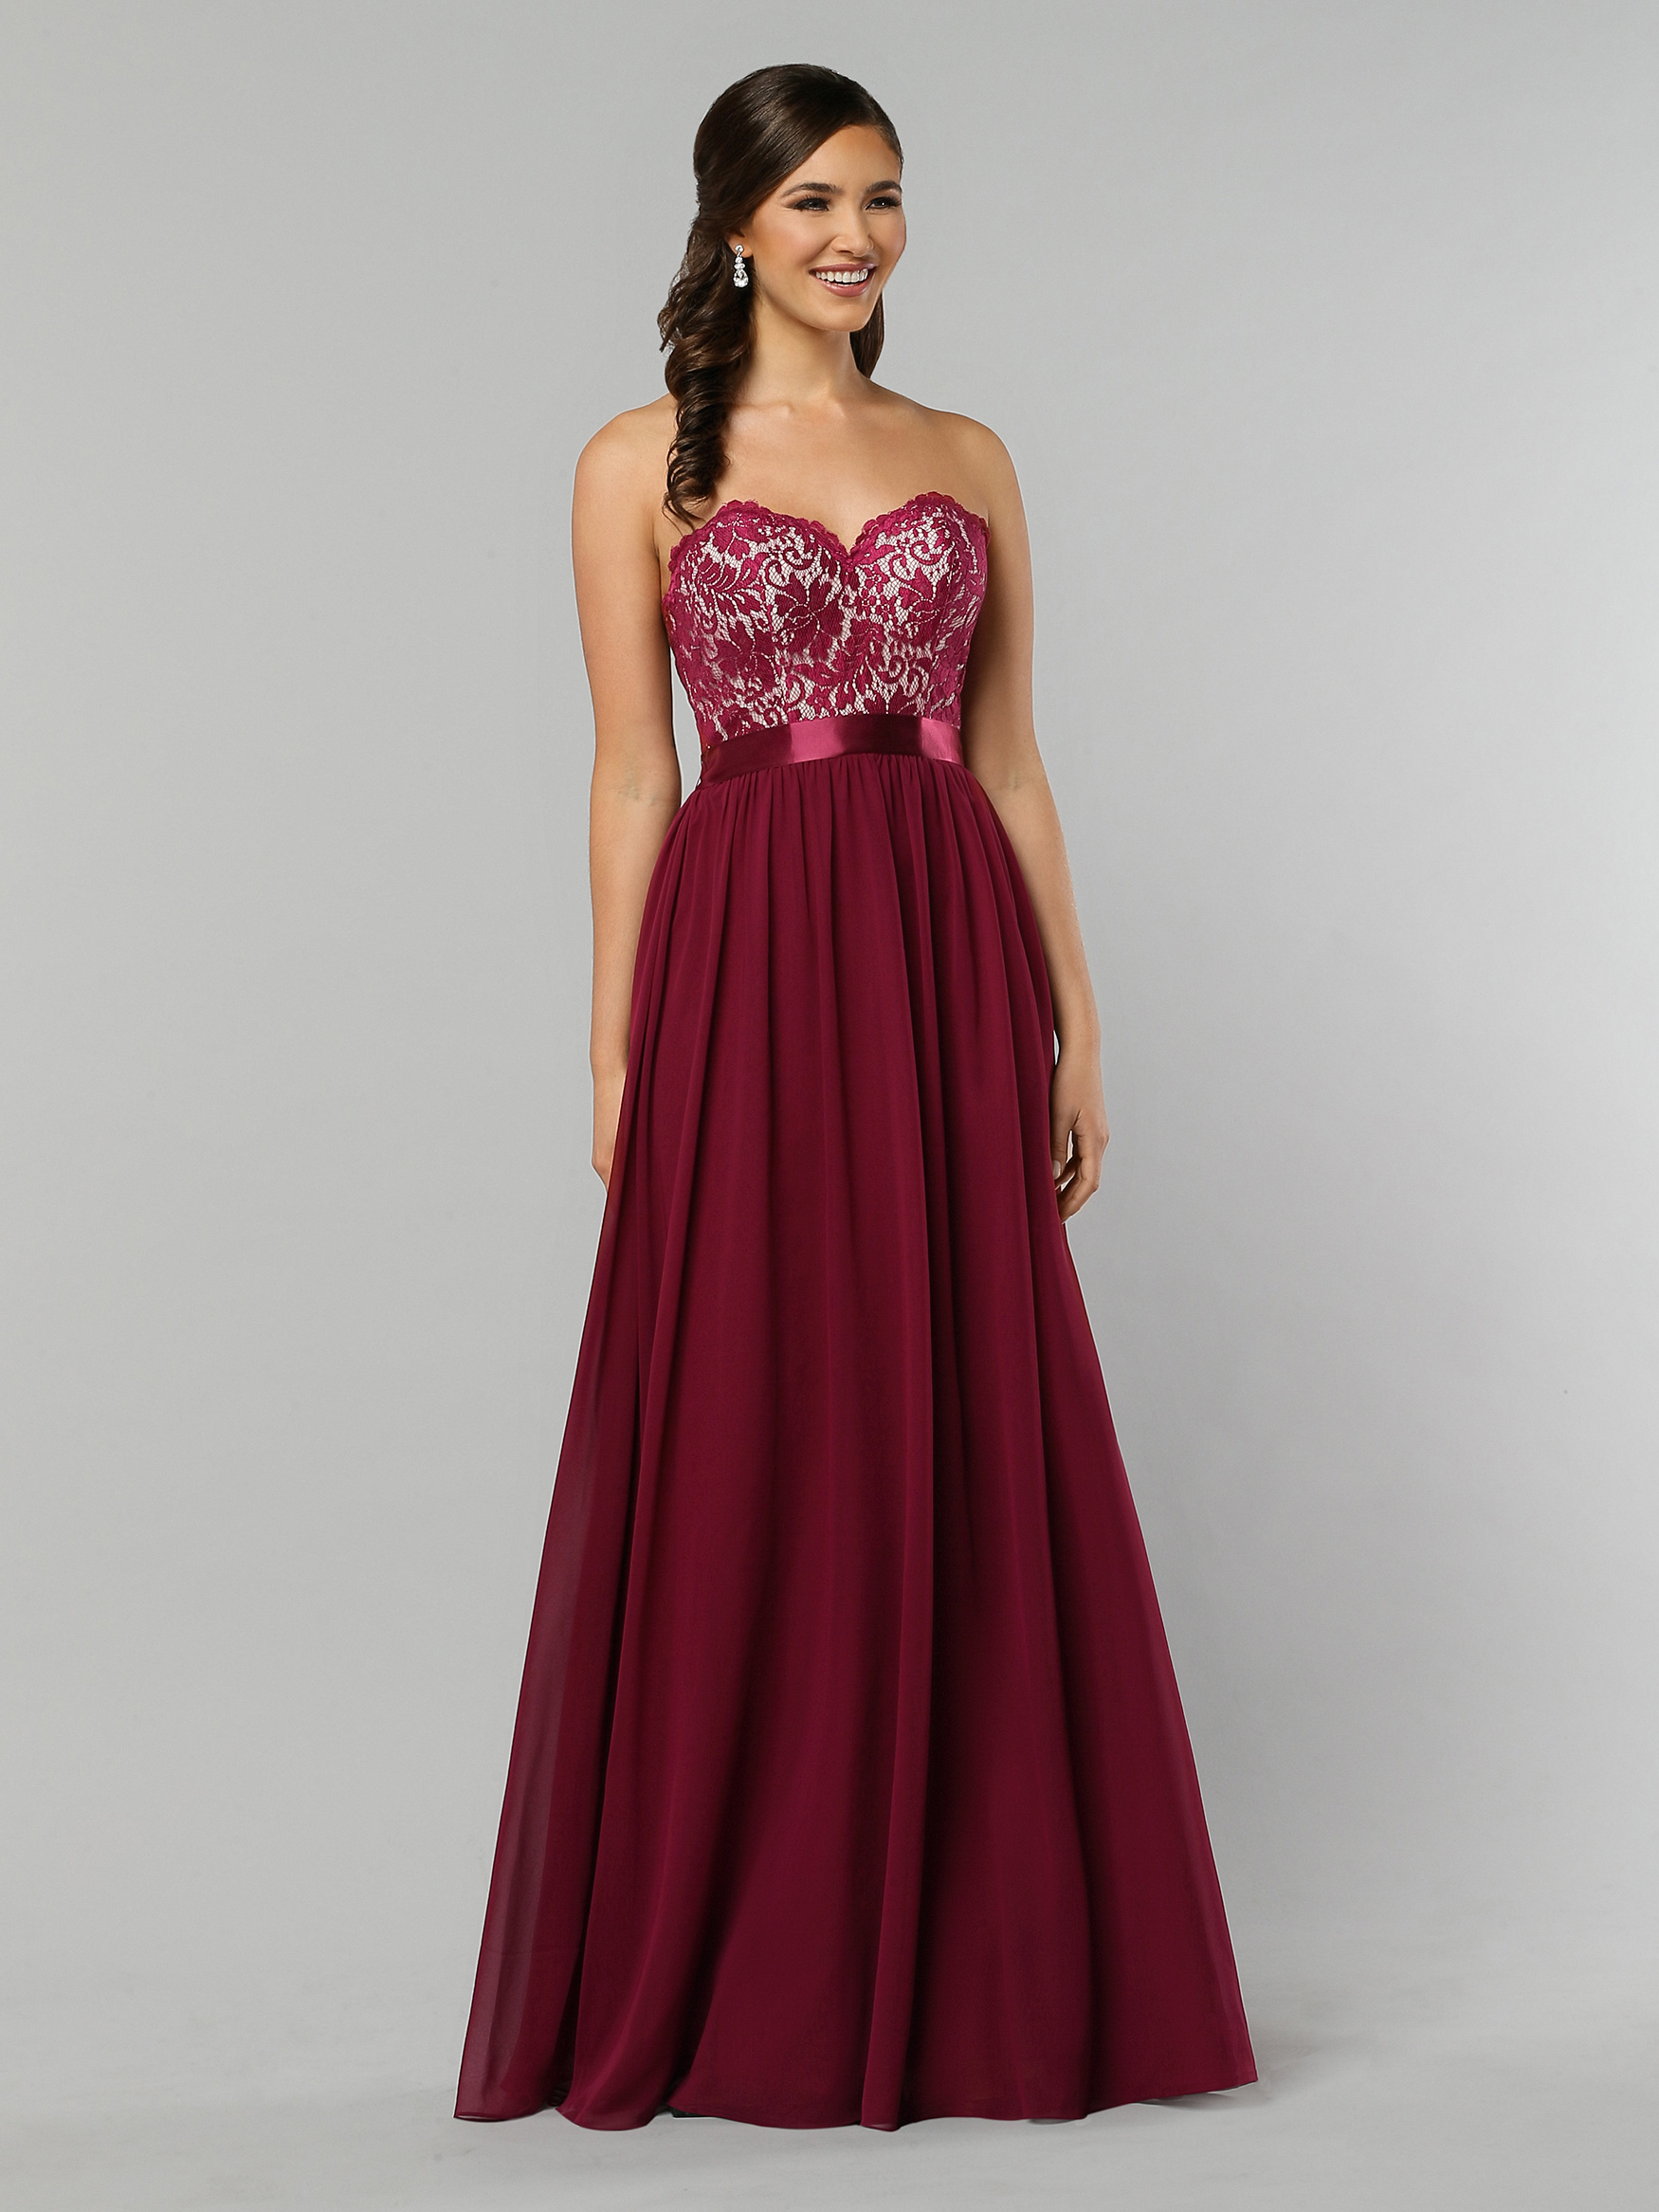 Bridesmaid dresses davinci bridal image showing front view of style 60319 ombrellifo Gallery